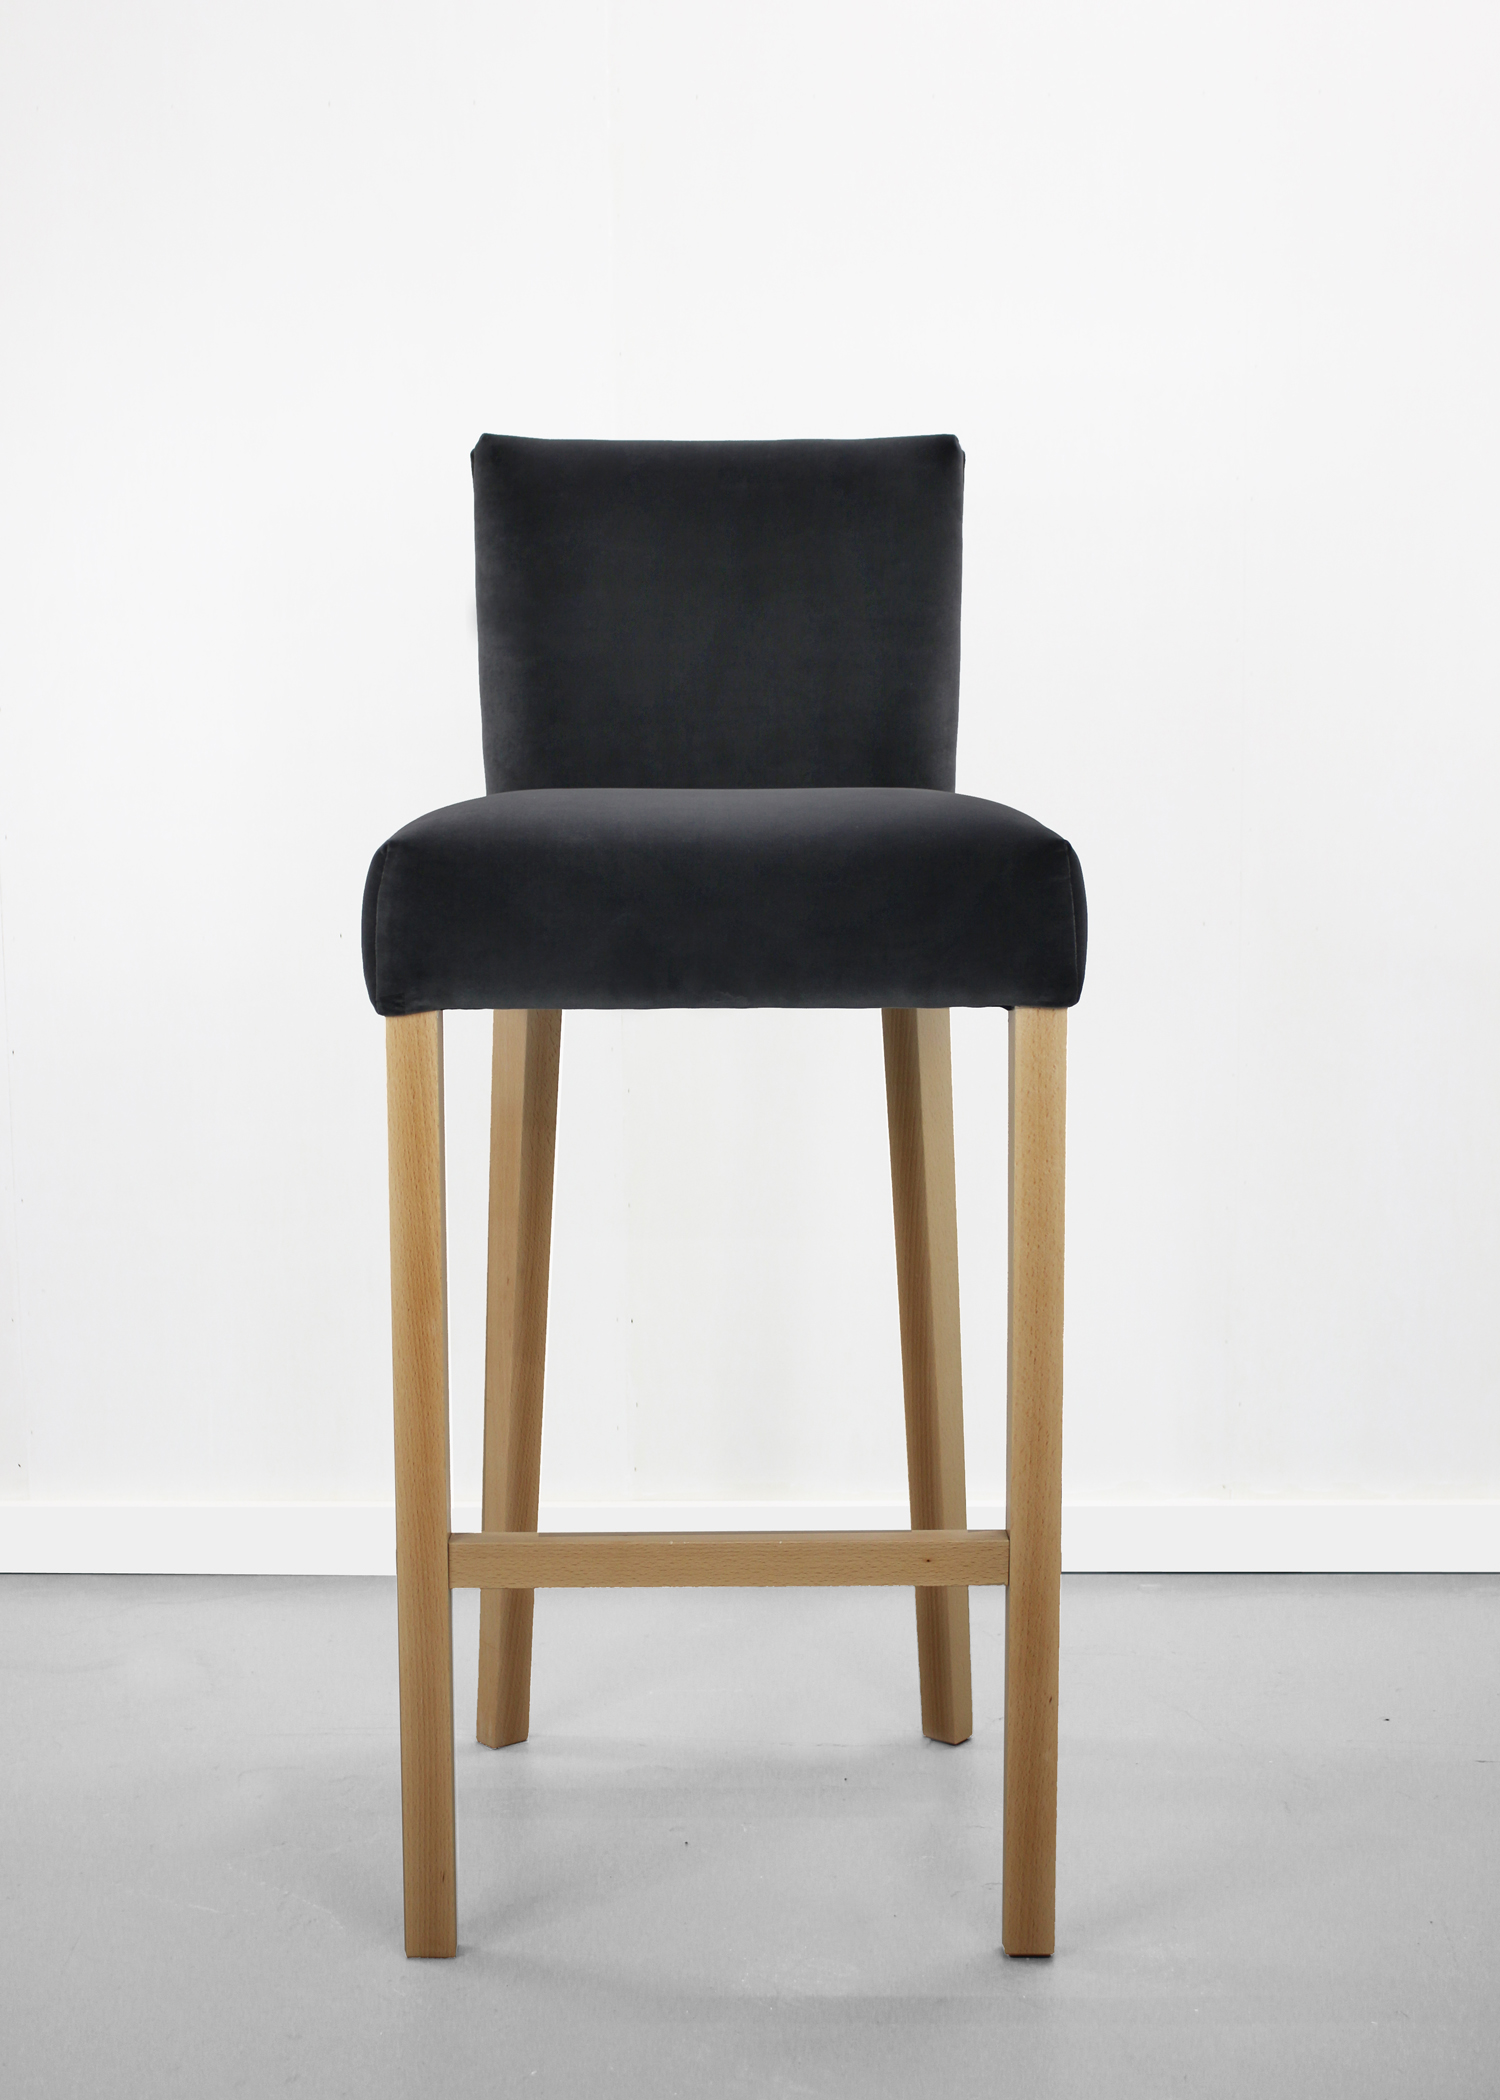 Dorchester bar stool